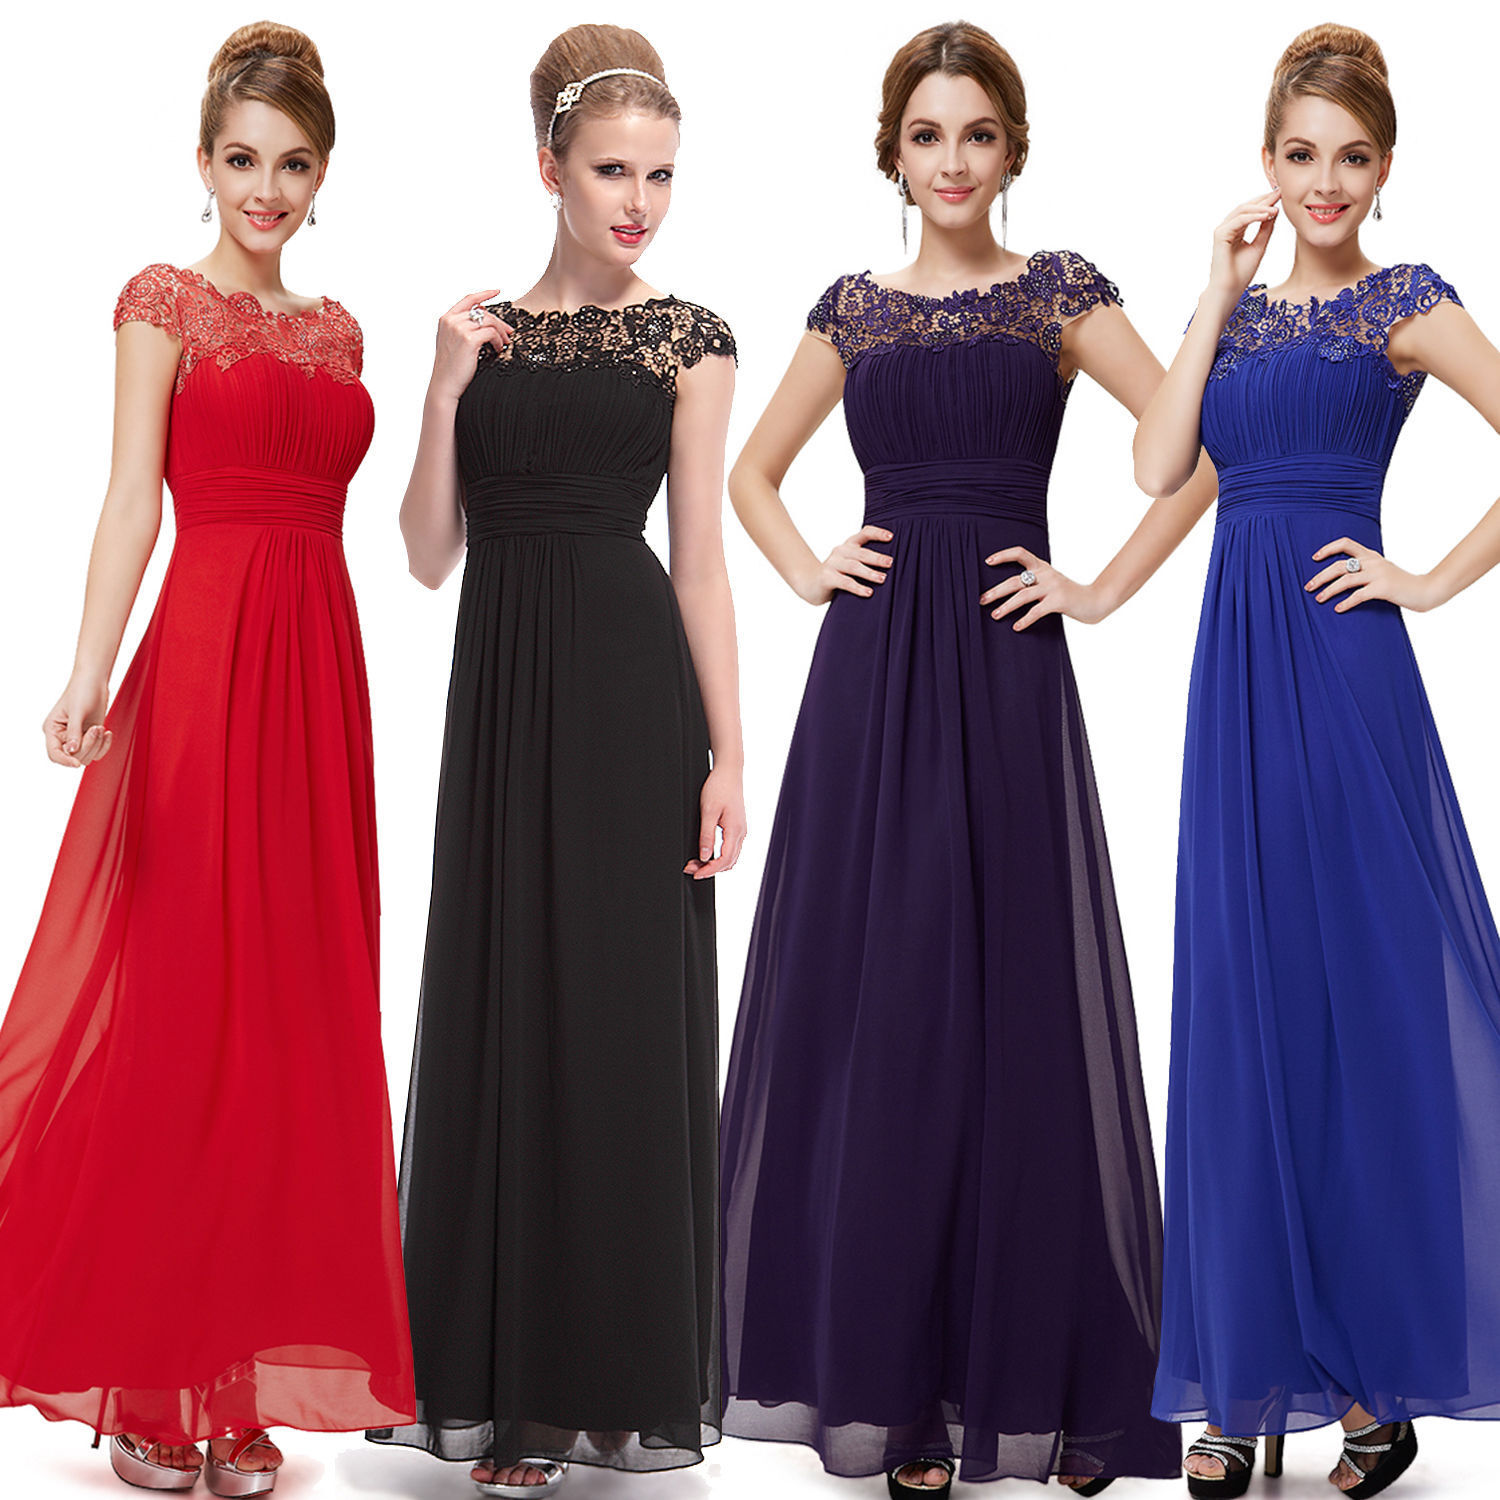 Long Maxi Evening Bridesmaid Formal Party Prom Dress Gown Size 8 -18 UK N51